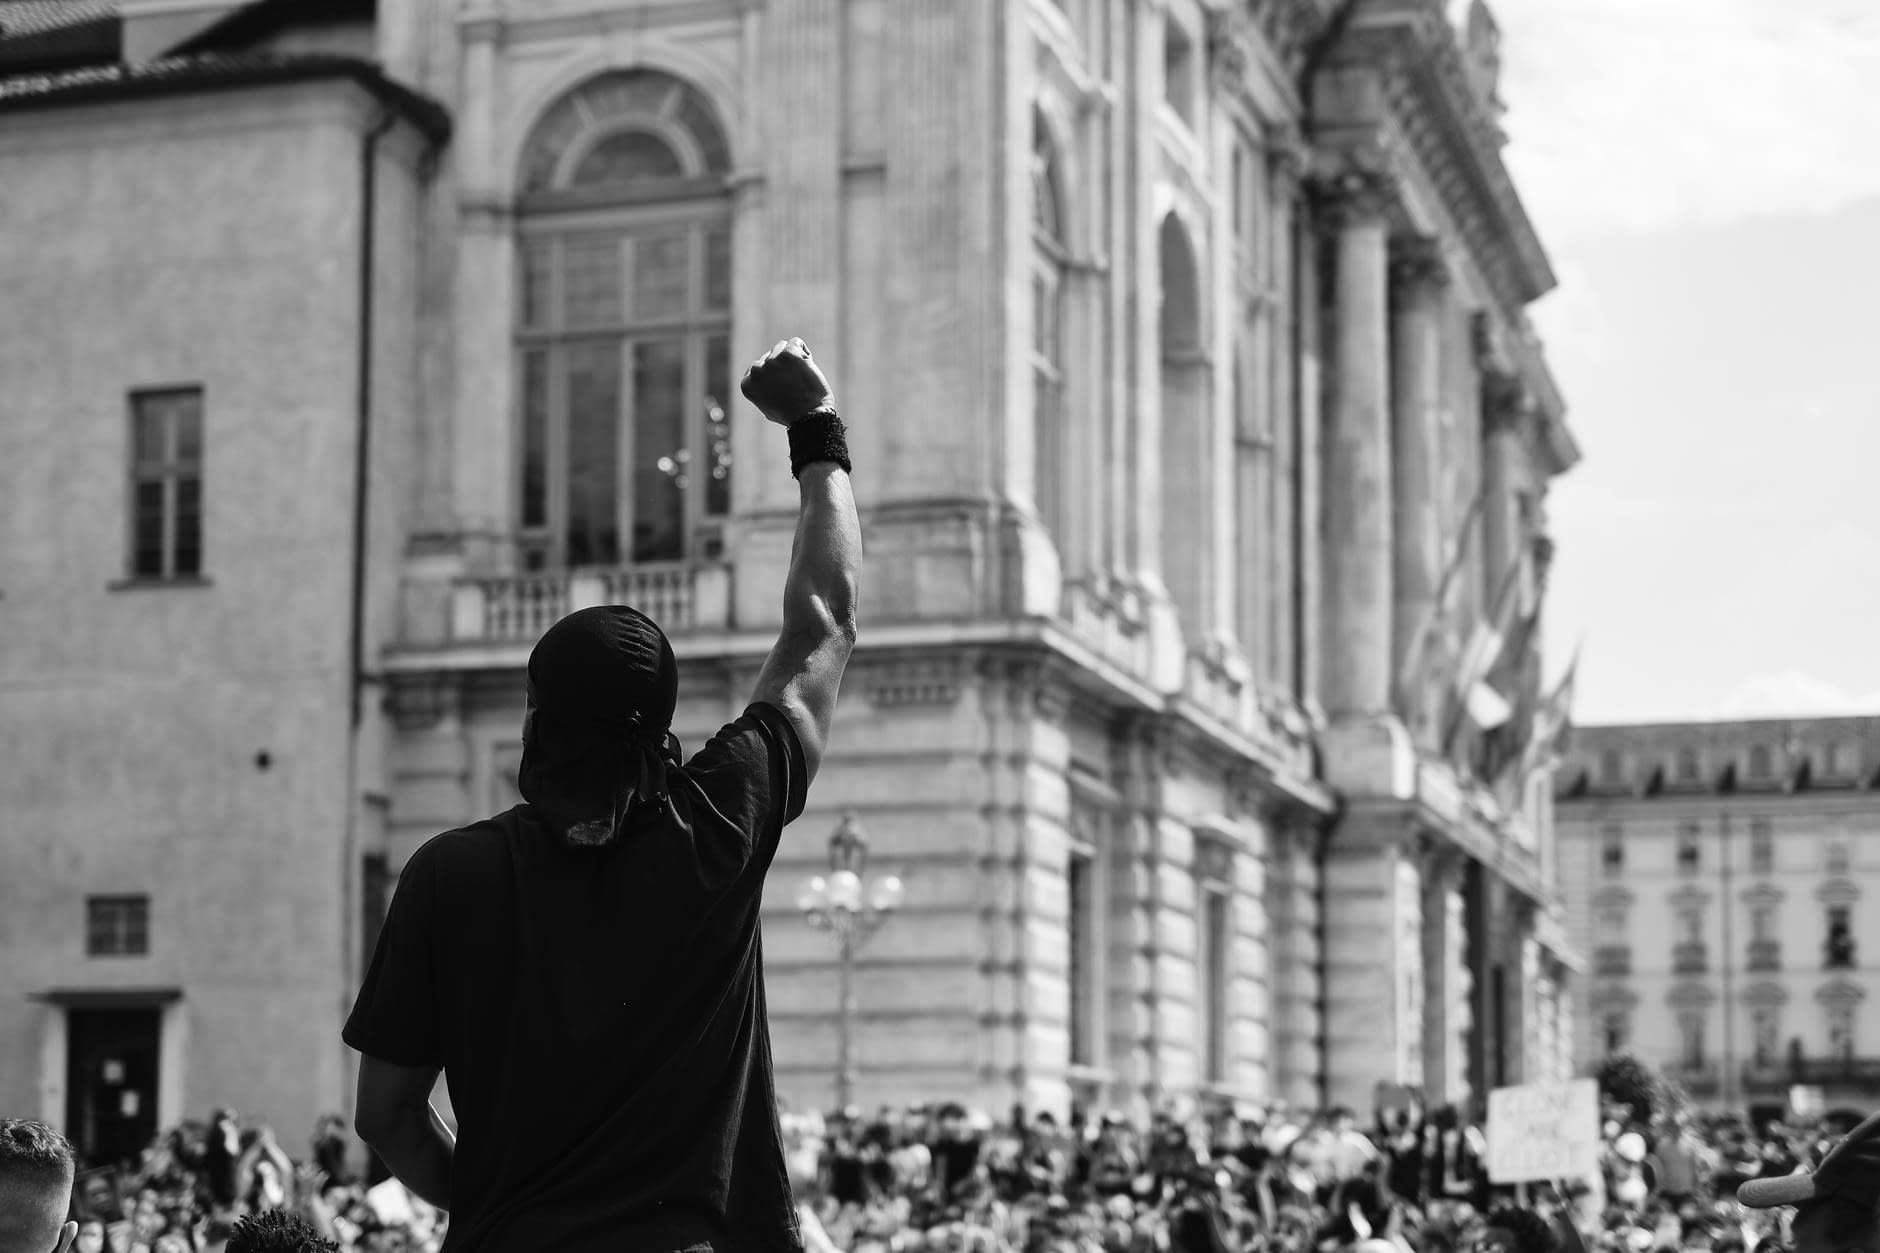 man in black t shirt standing infront of a crowd in protest